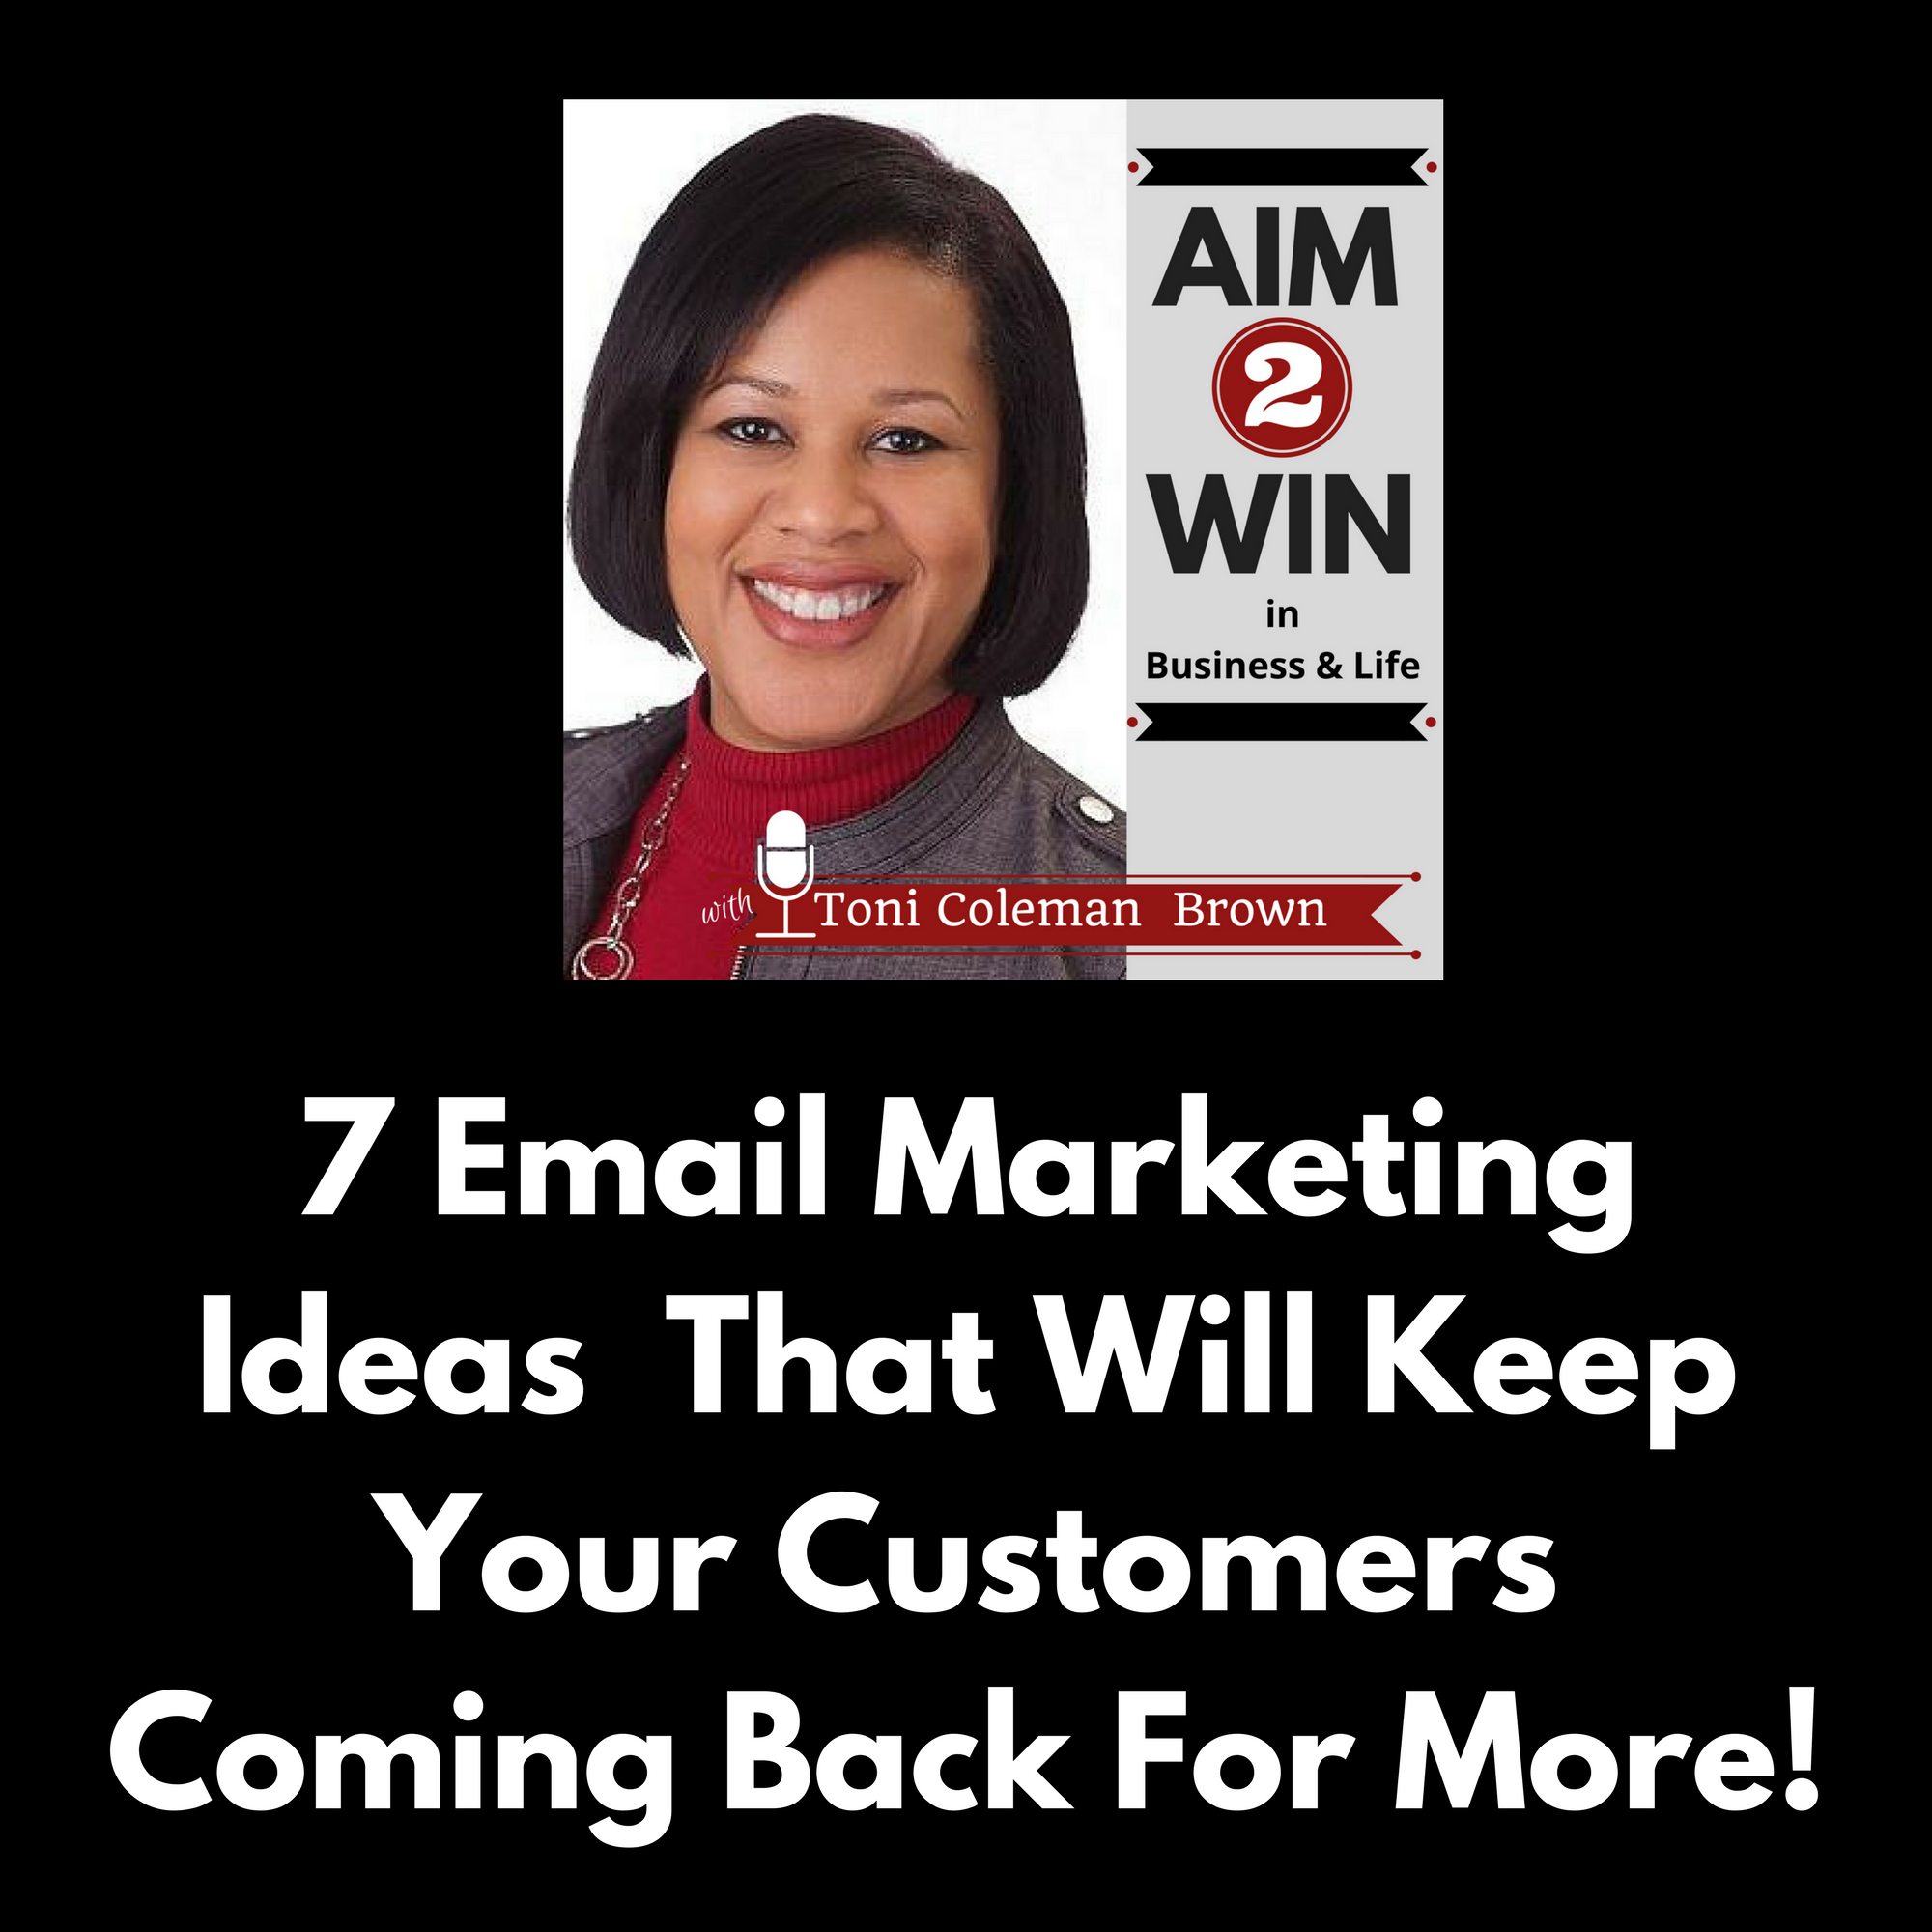 7 Email Marketing Ideas That Will Keep Your Customers Coming Back - Episode 10